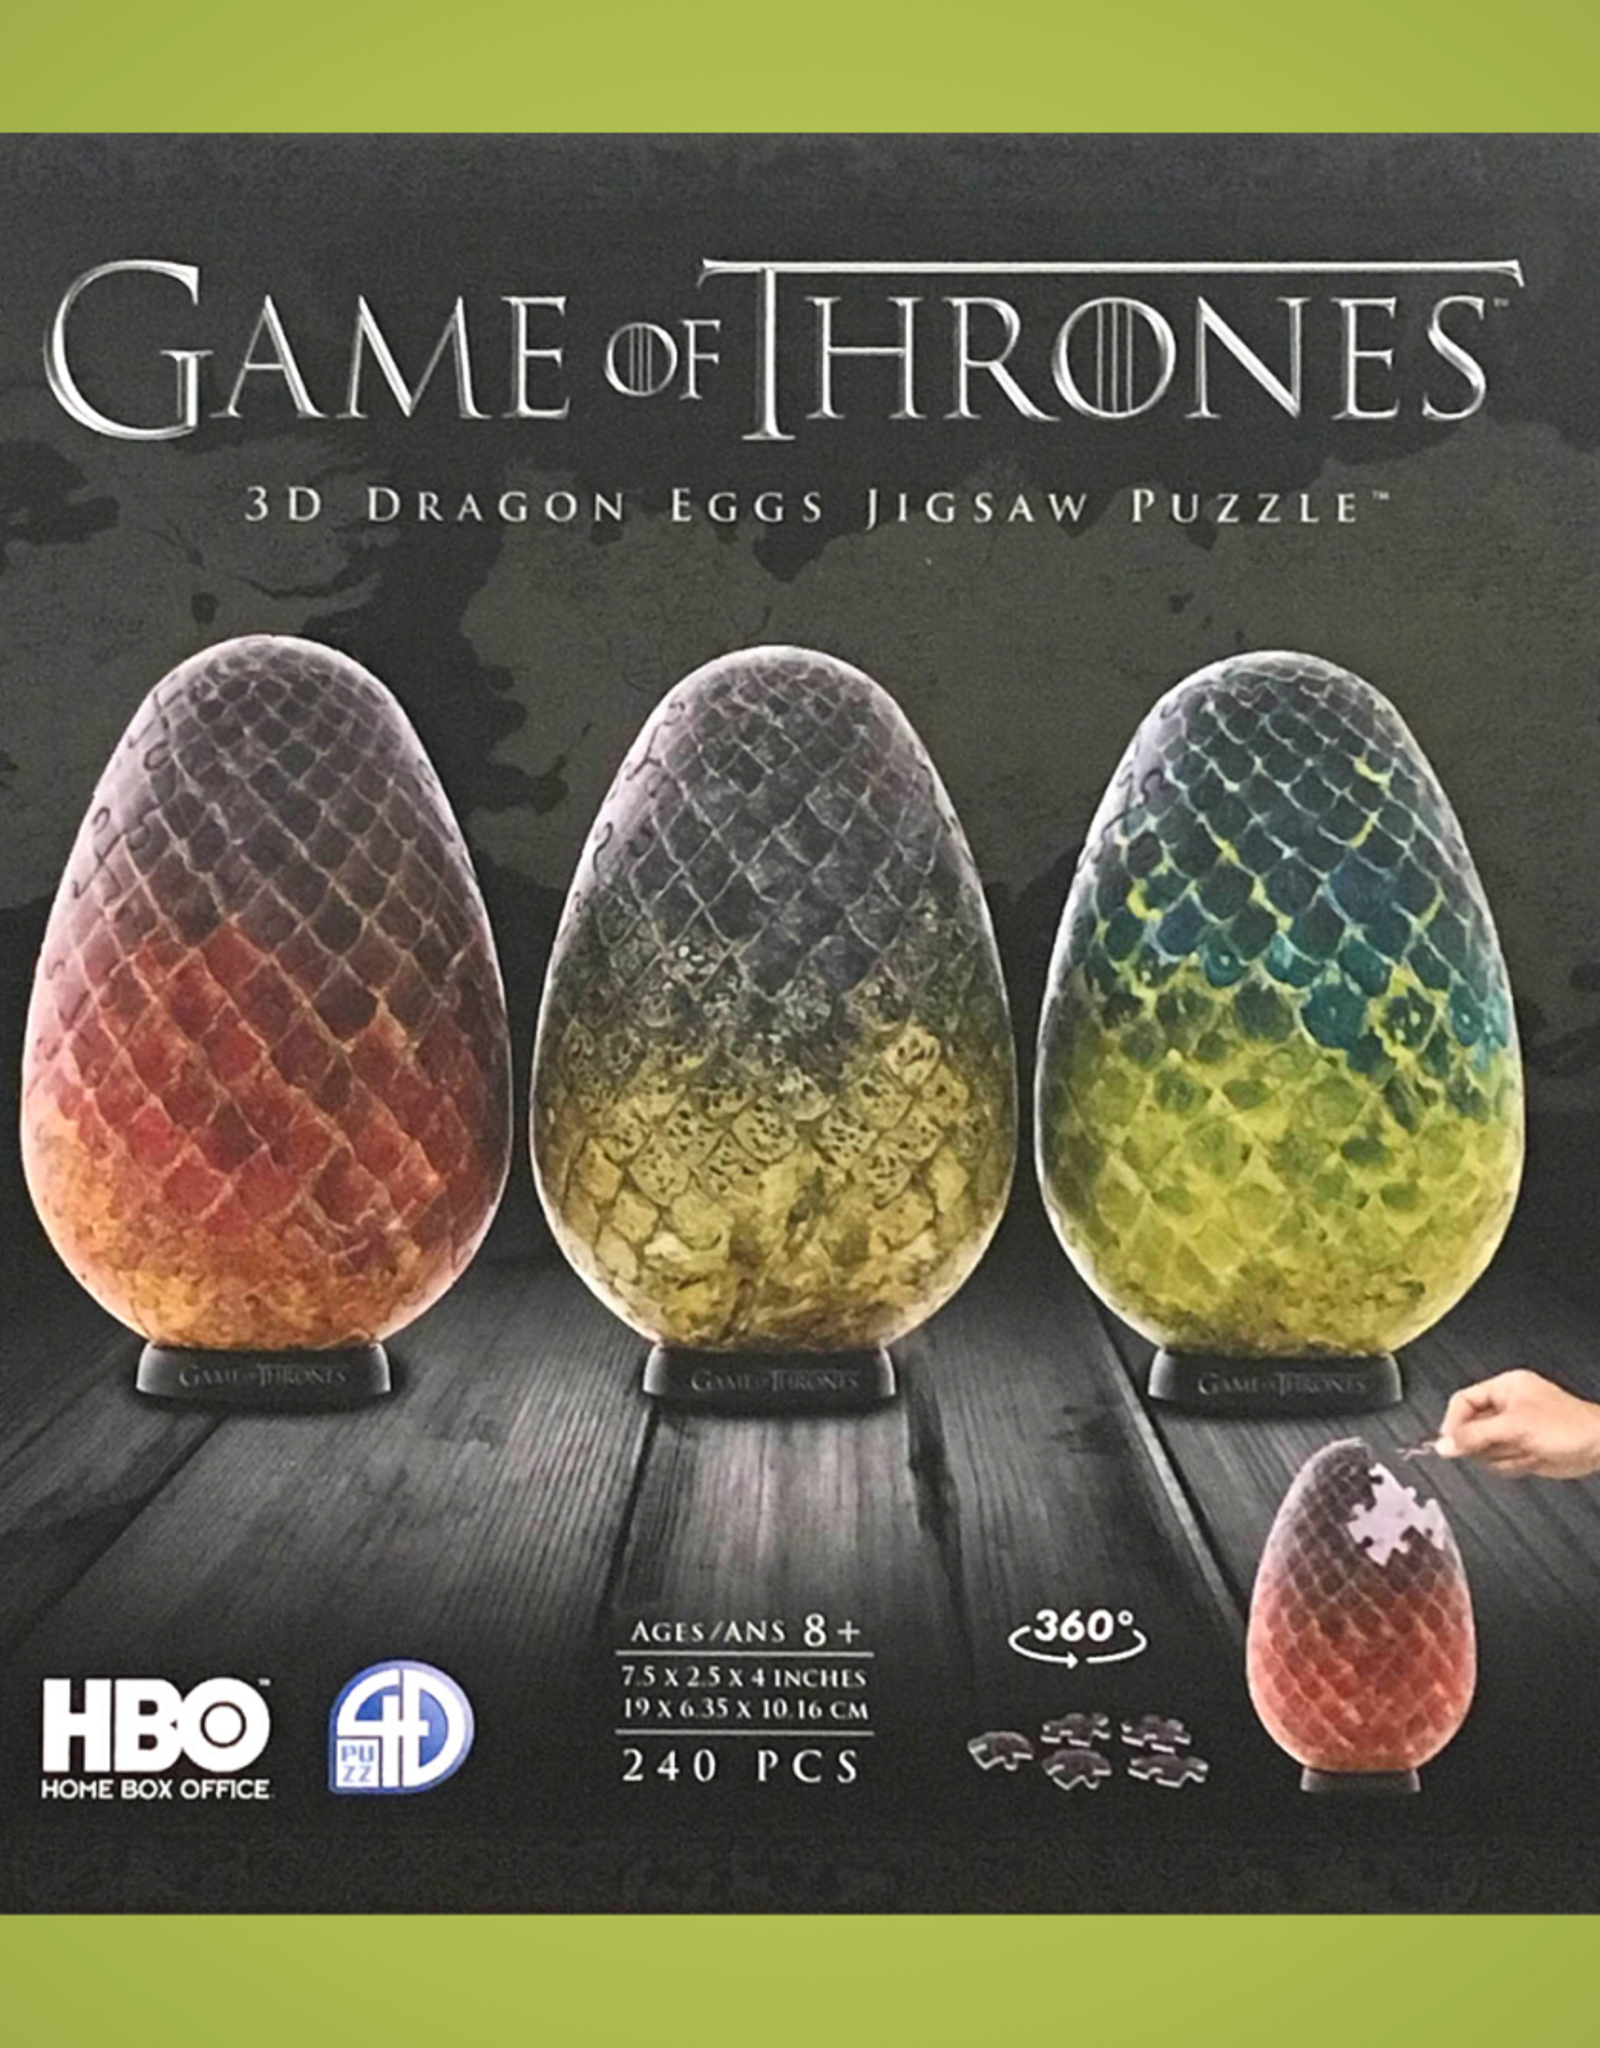 GAME OF THRONES 3D DRAGON EGGS